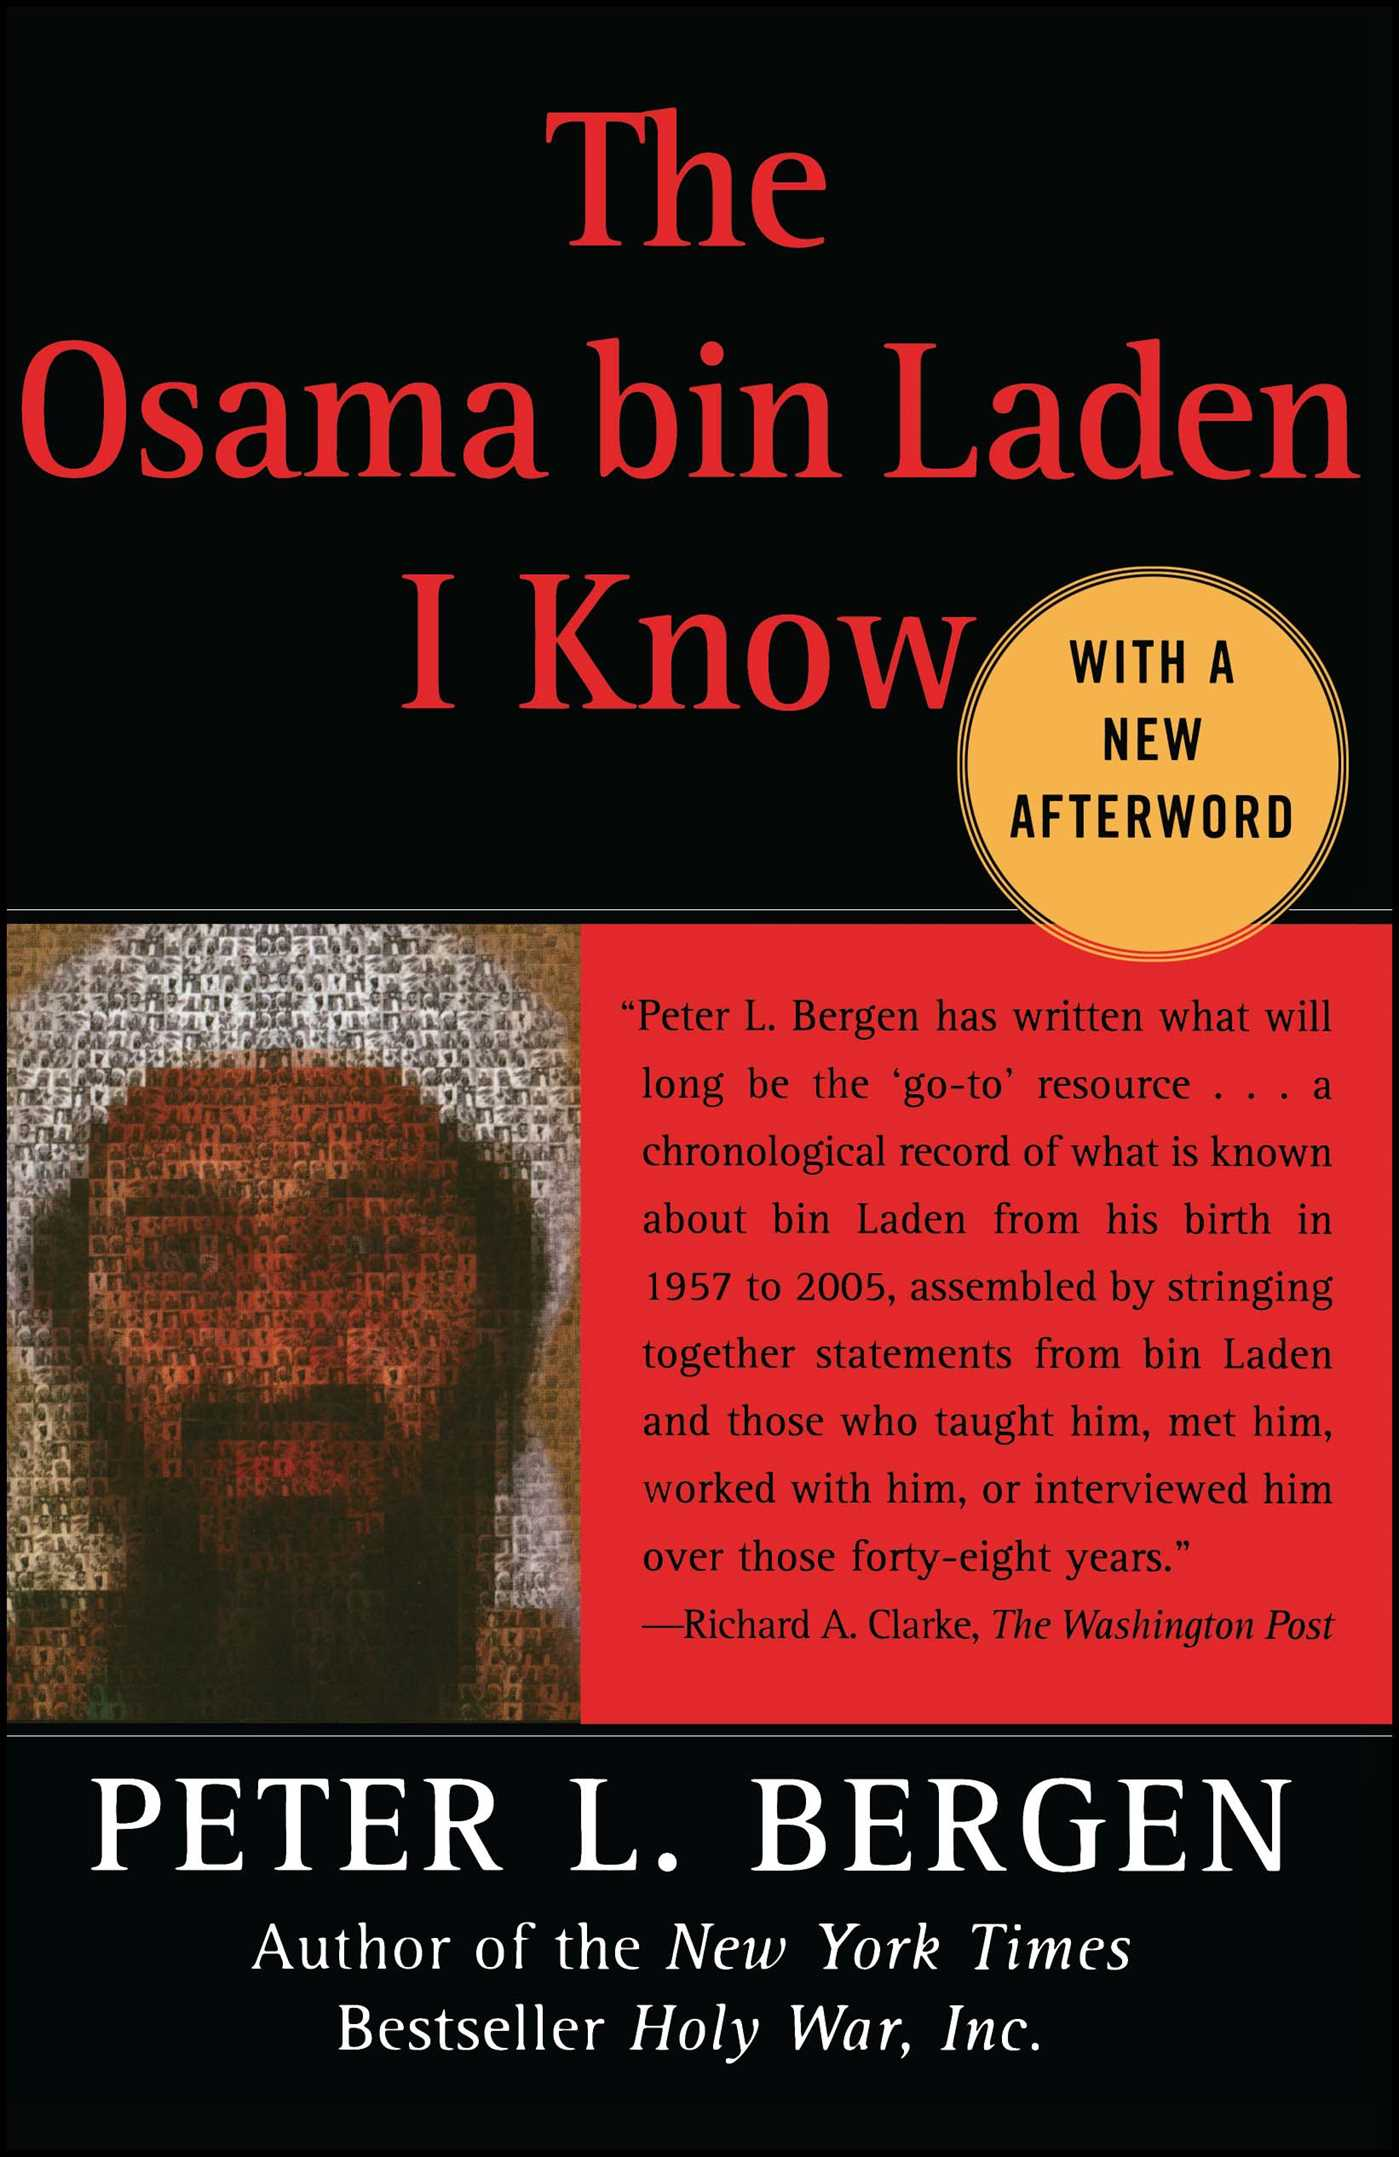 The osama bin laden i know 9780743278928 hr